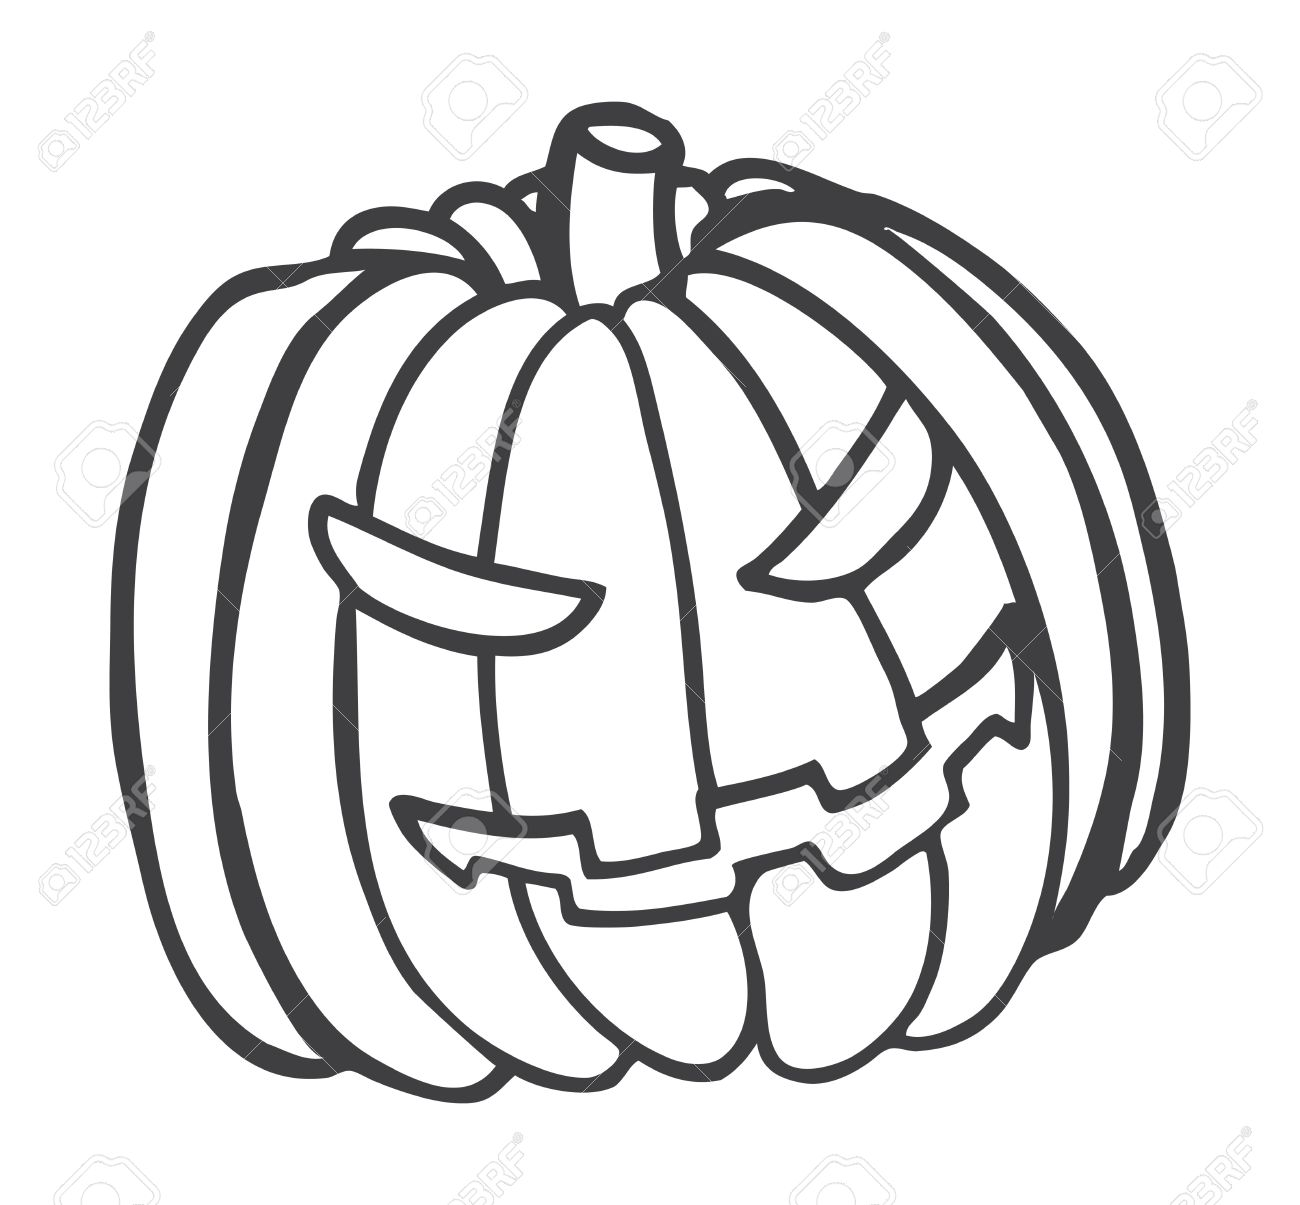 Halloween Pumpkin Doodle Royalty Free Cliparts, Vectors, And Stock.